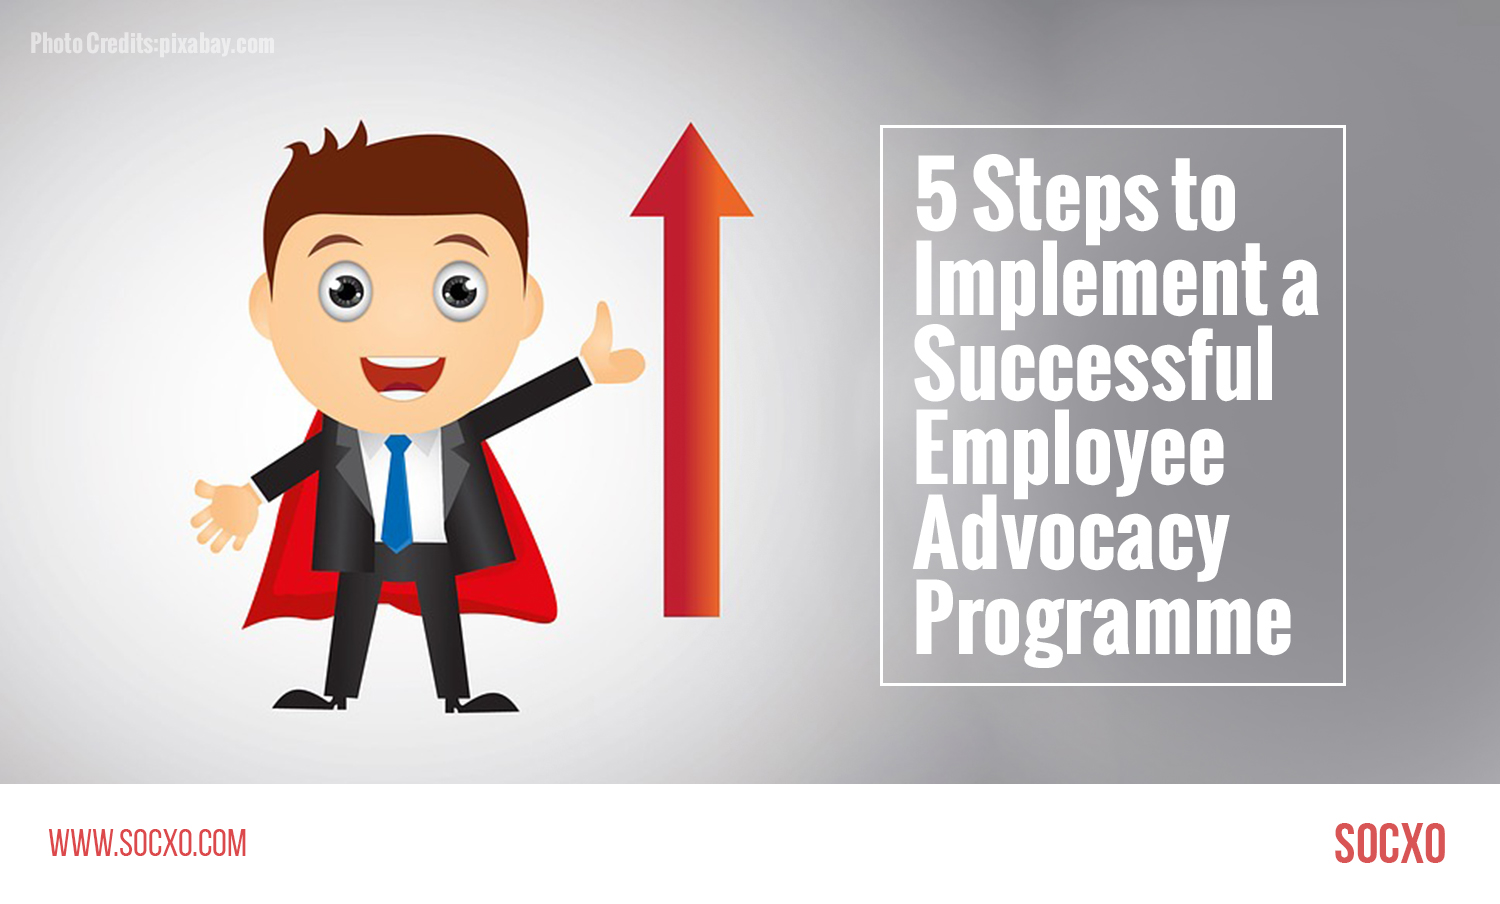 5 steps to implement a successful employee advocacy program